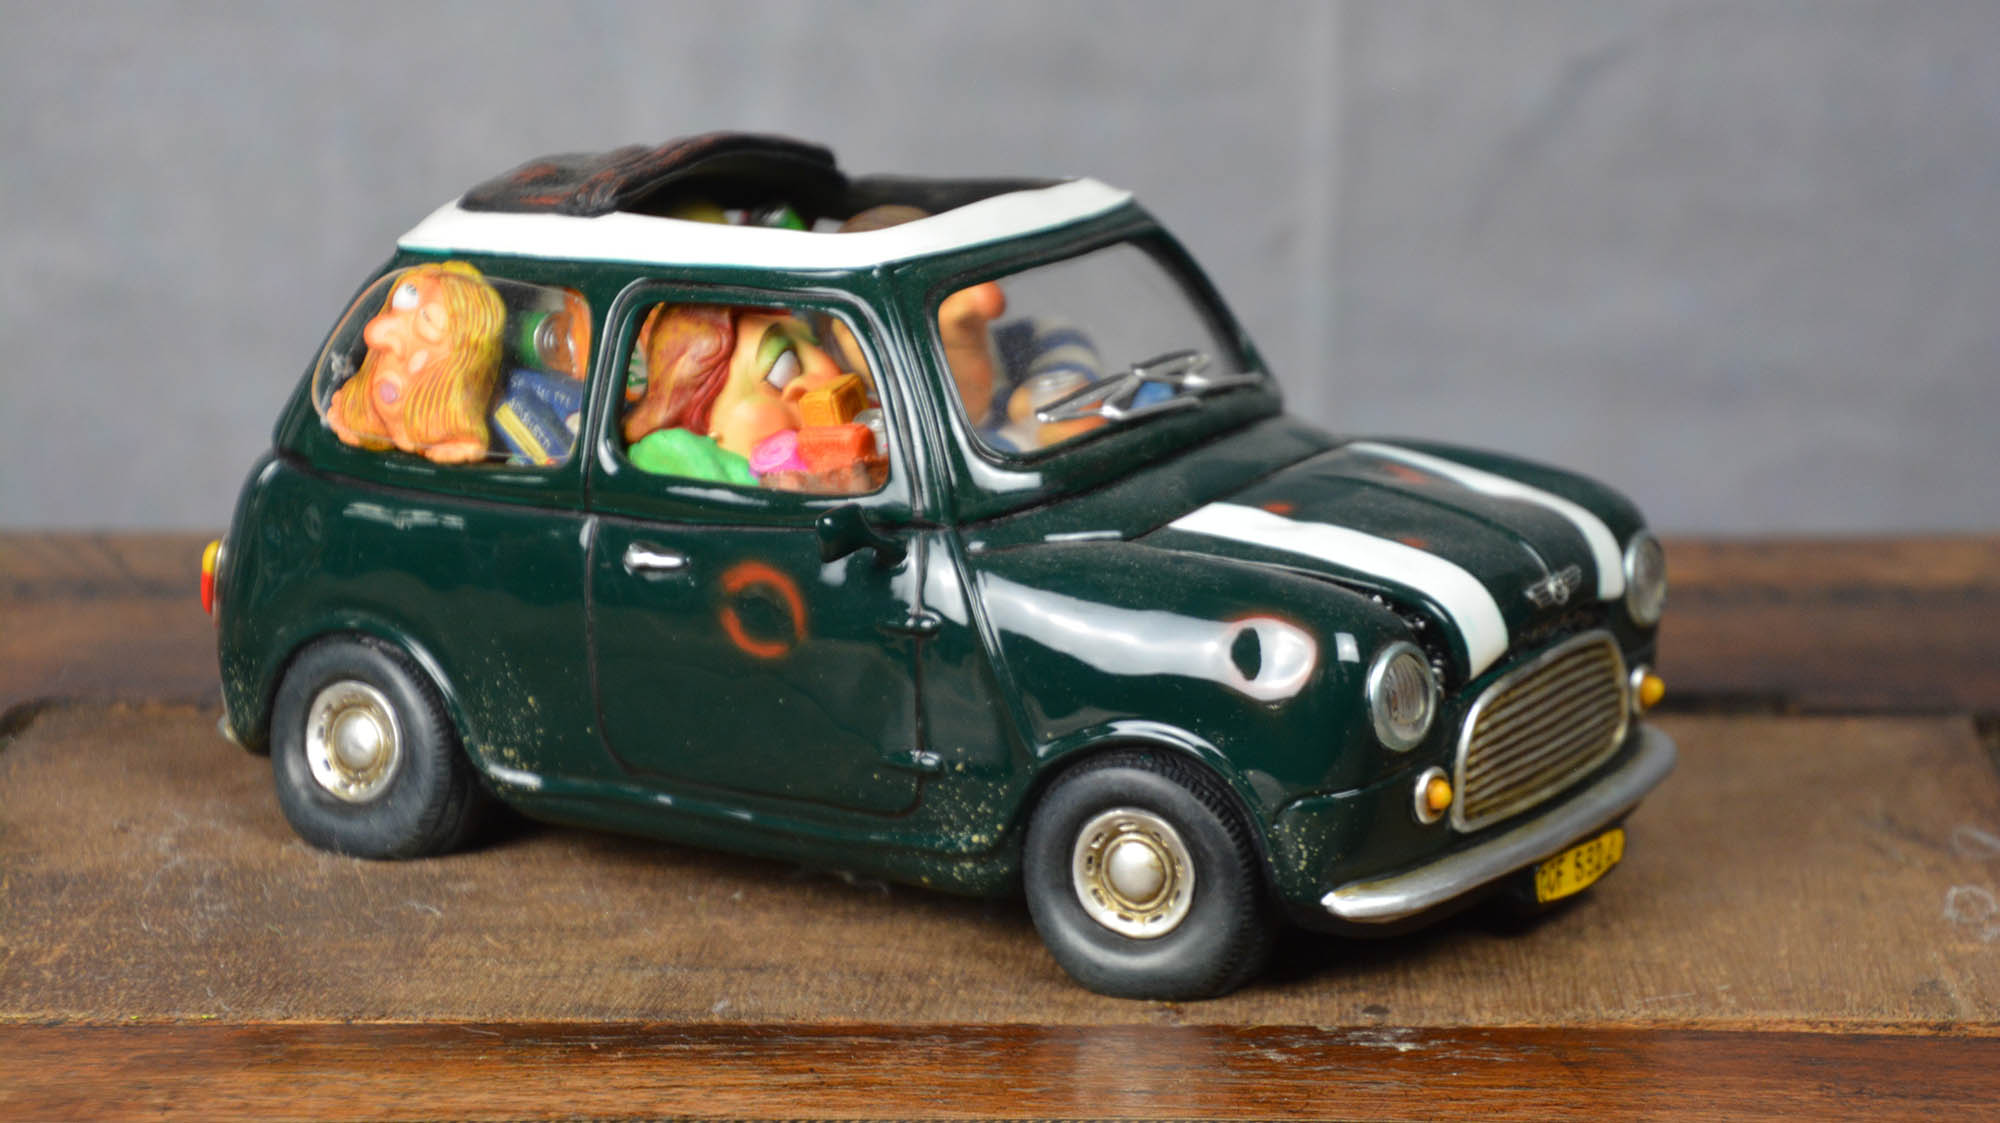 boutique figurine piece artisanale vehicule mini parodie